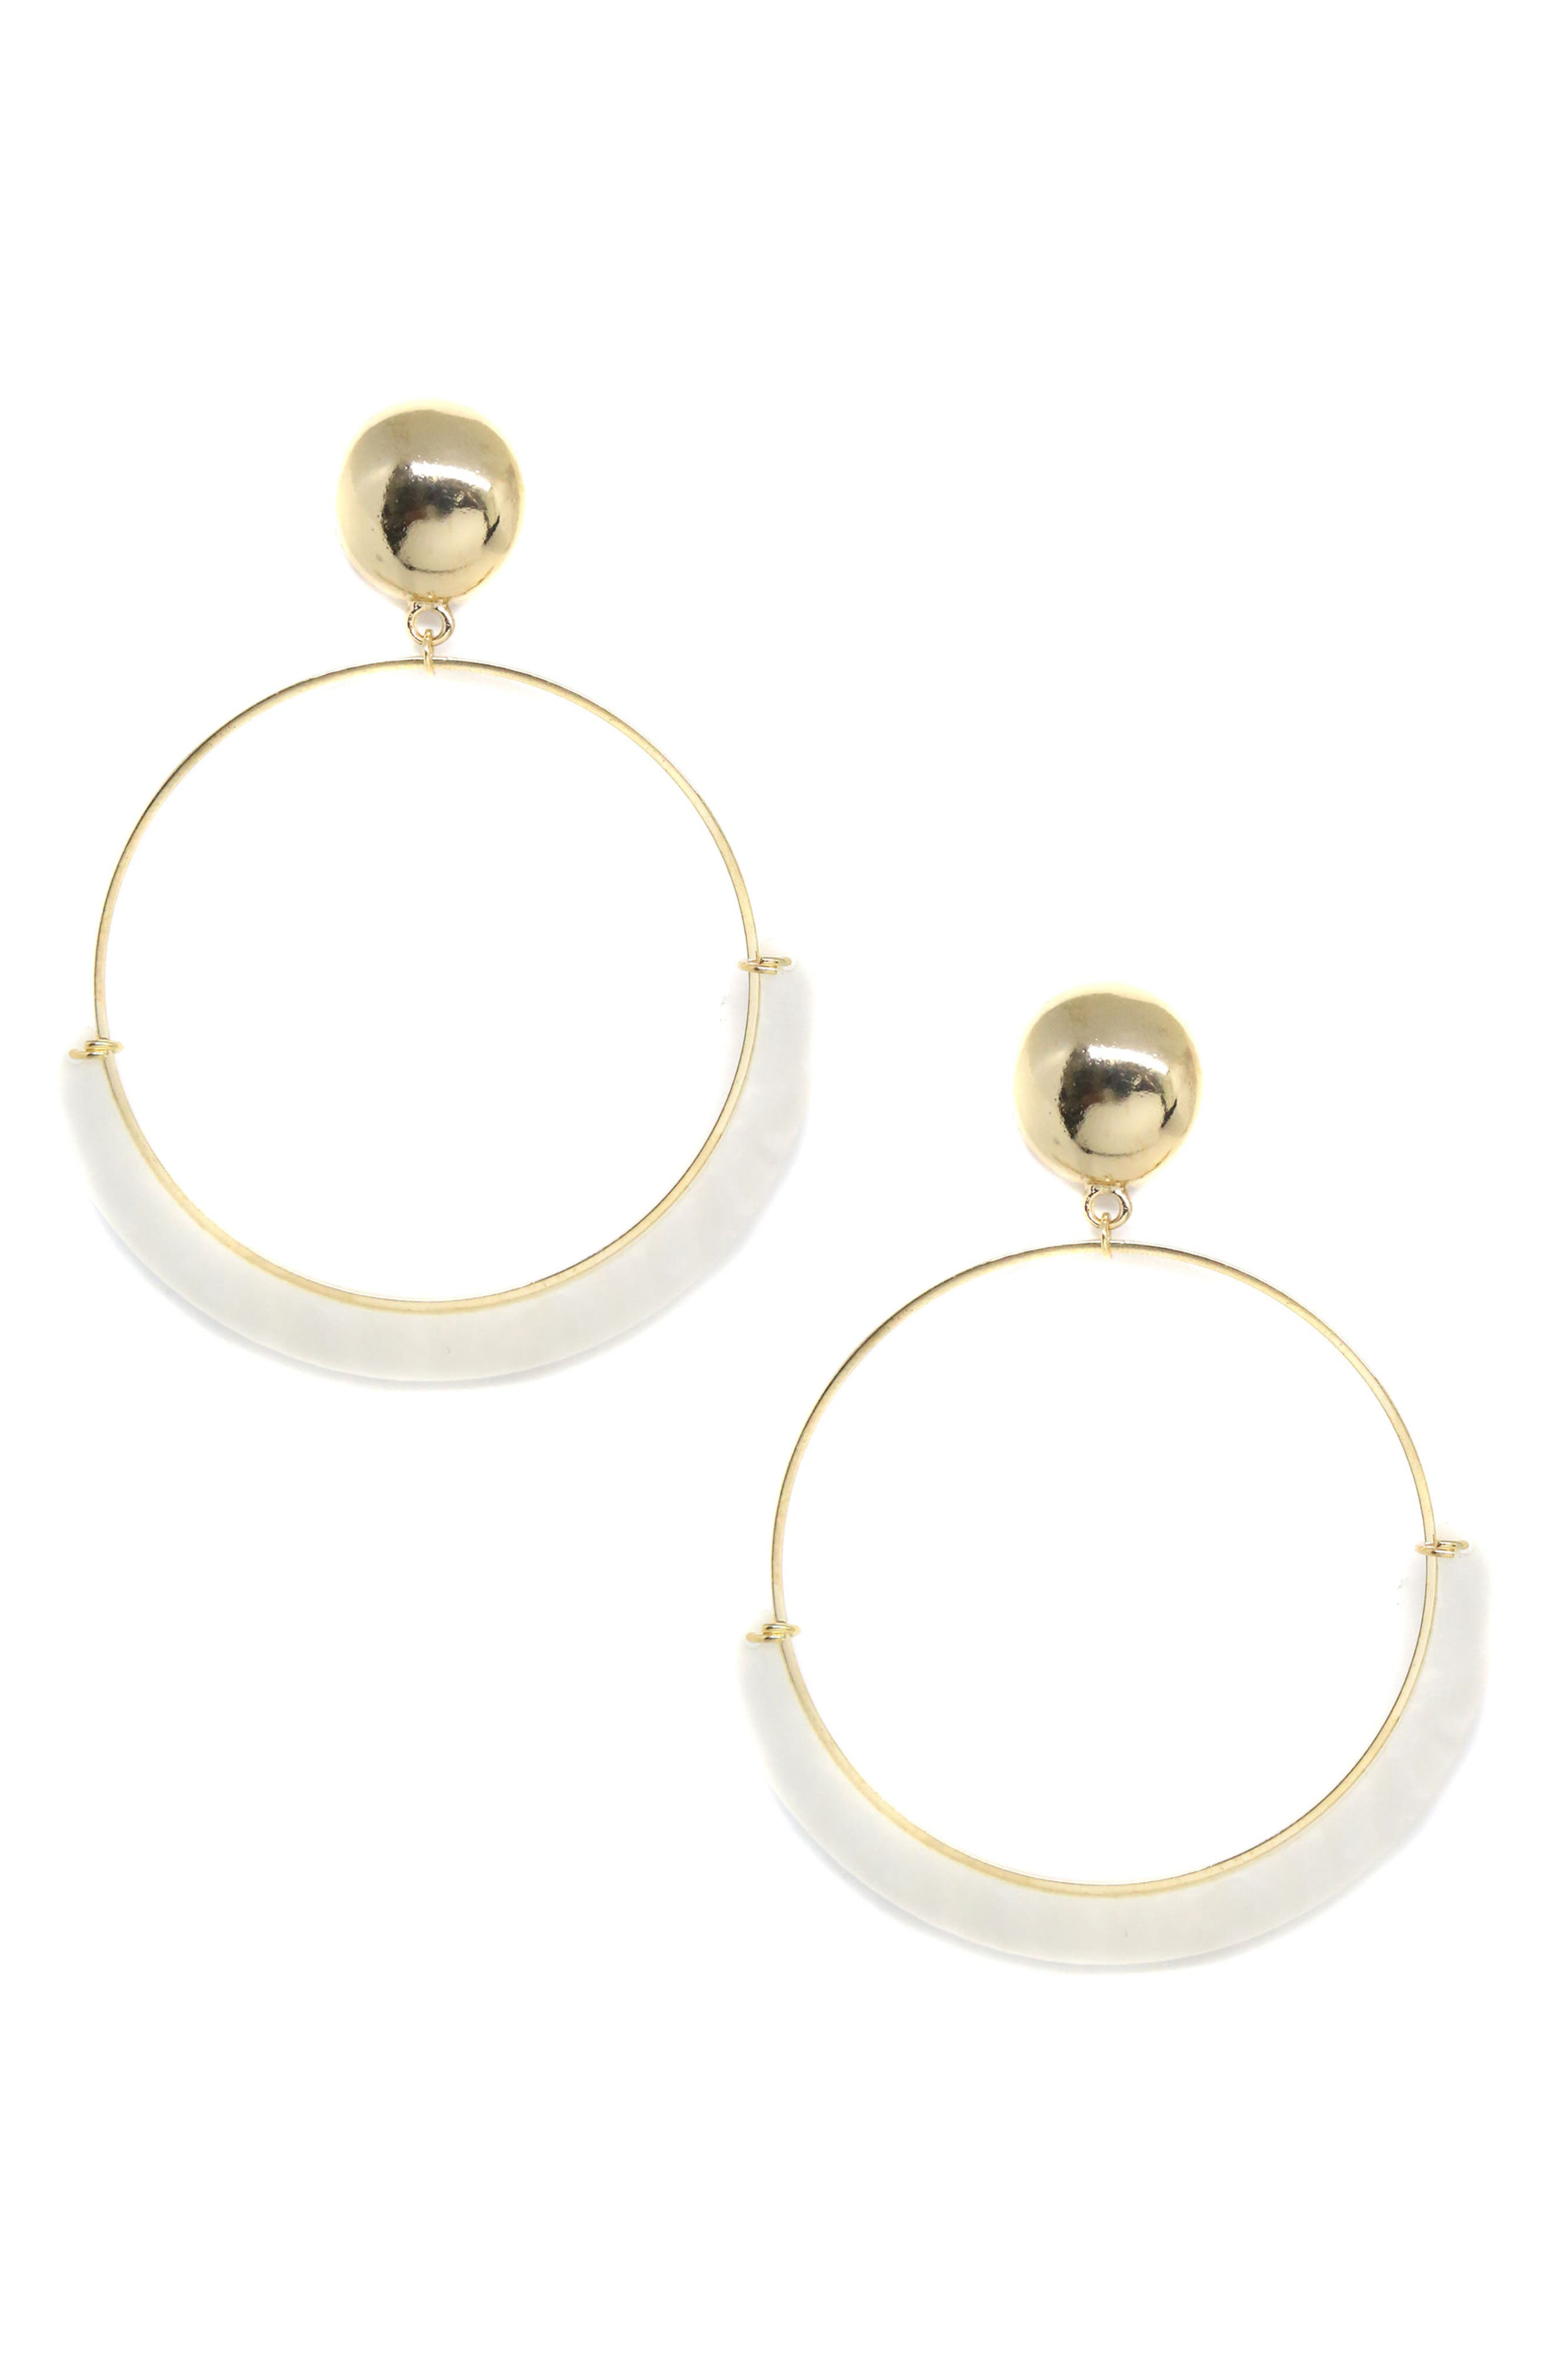 Gold Wire & Resin Hoop Earrings,                             Main thumbnail 1, color,                             Cream/Gold